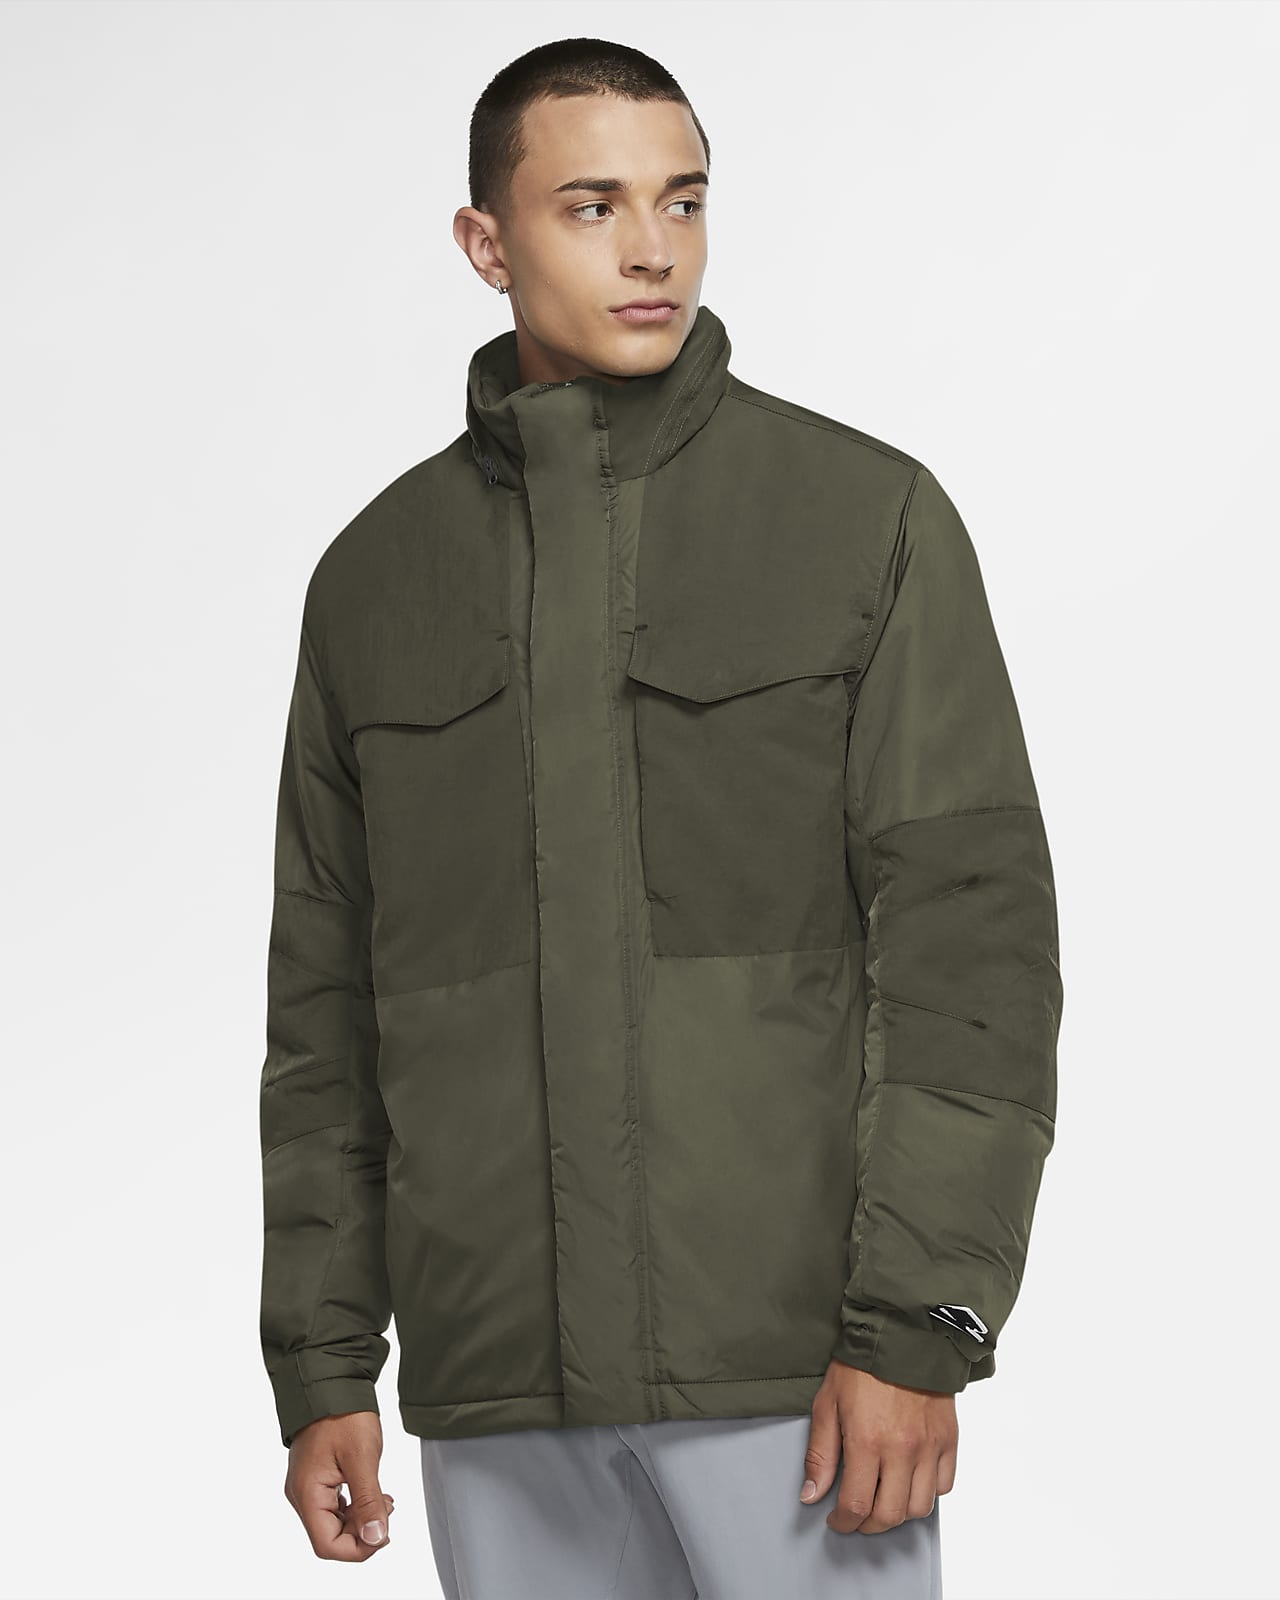 Nike Sportswear Synthetic-Fill Men's Repel M65 Jacket